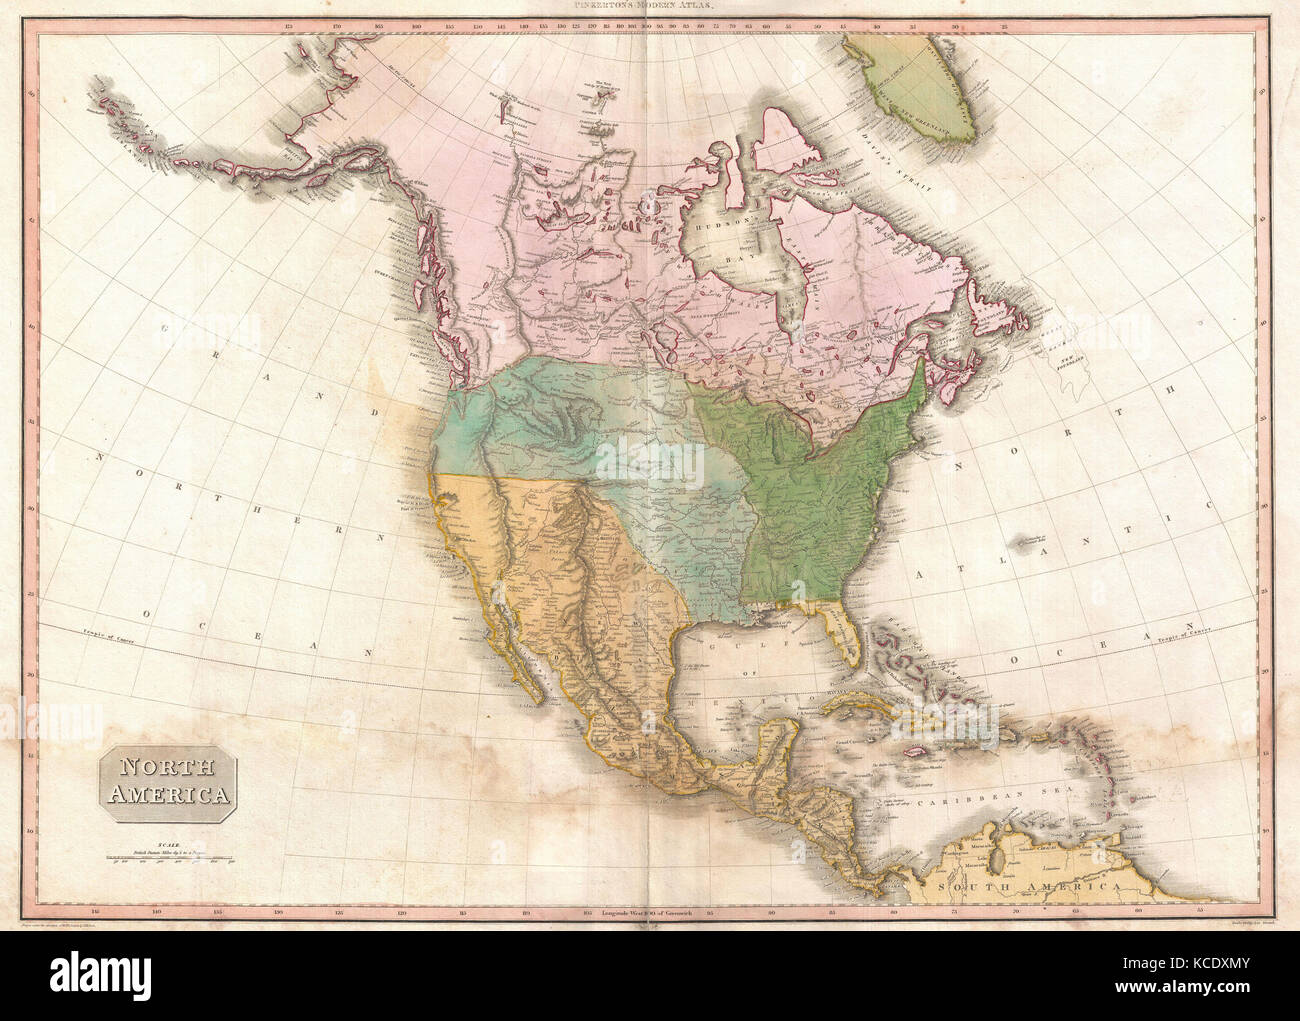 1818  Pinkerton Map of North America  John Pinkerton  1758     1826     1818  Pinkerton Map of North America  John Pinkerton  1758     1826  Scottish  antiquarian  cartographer  UK